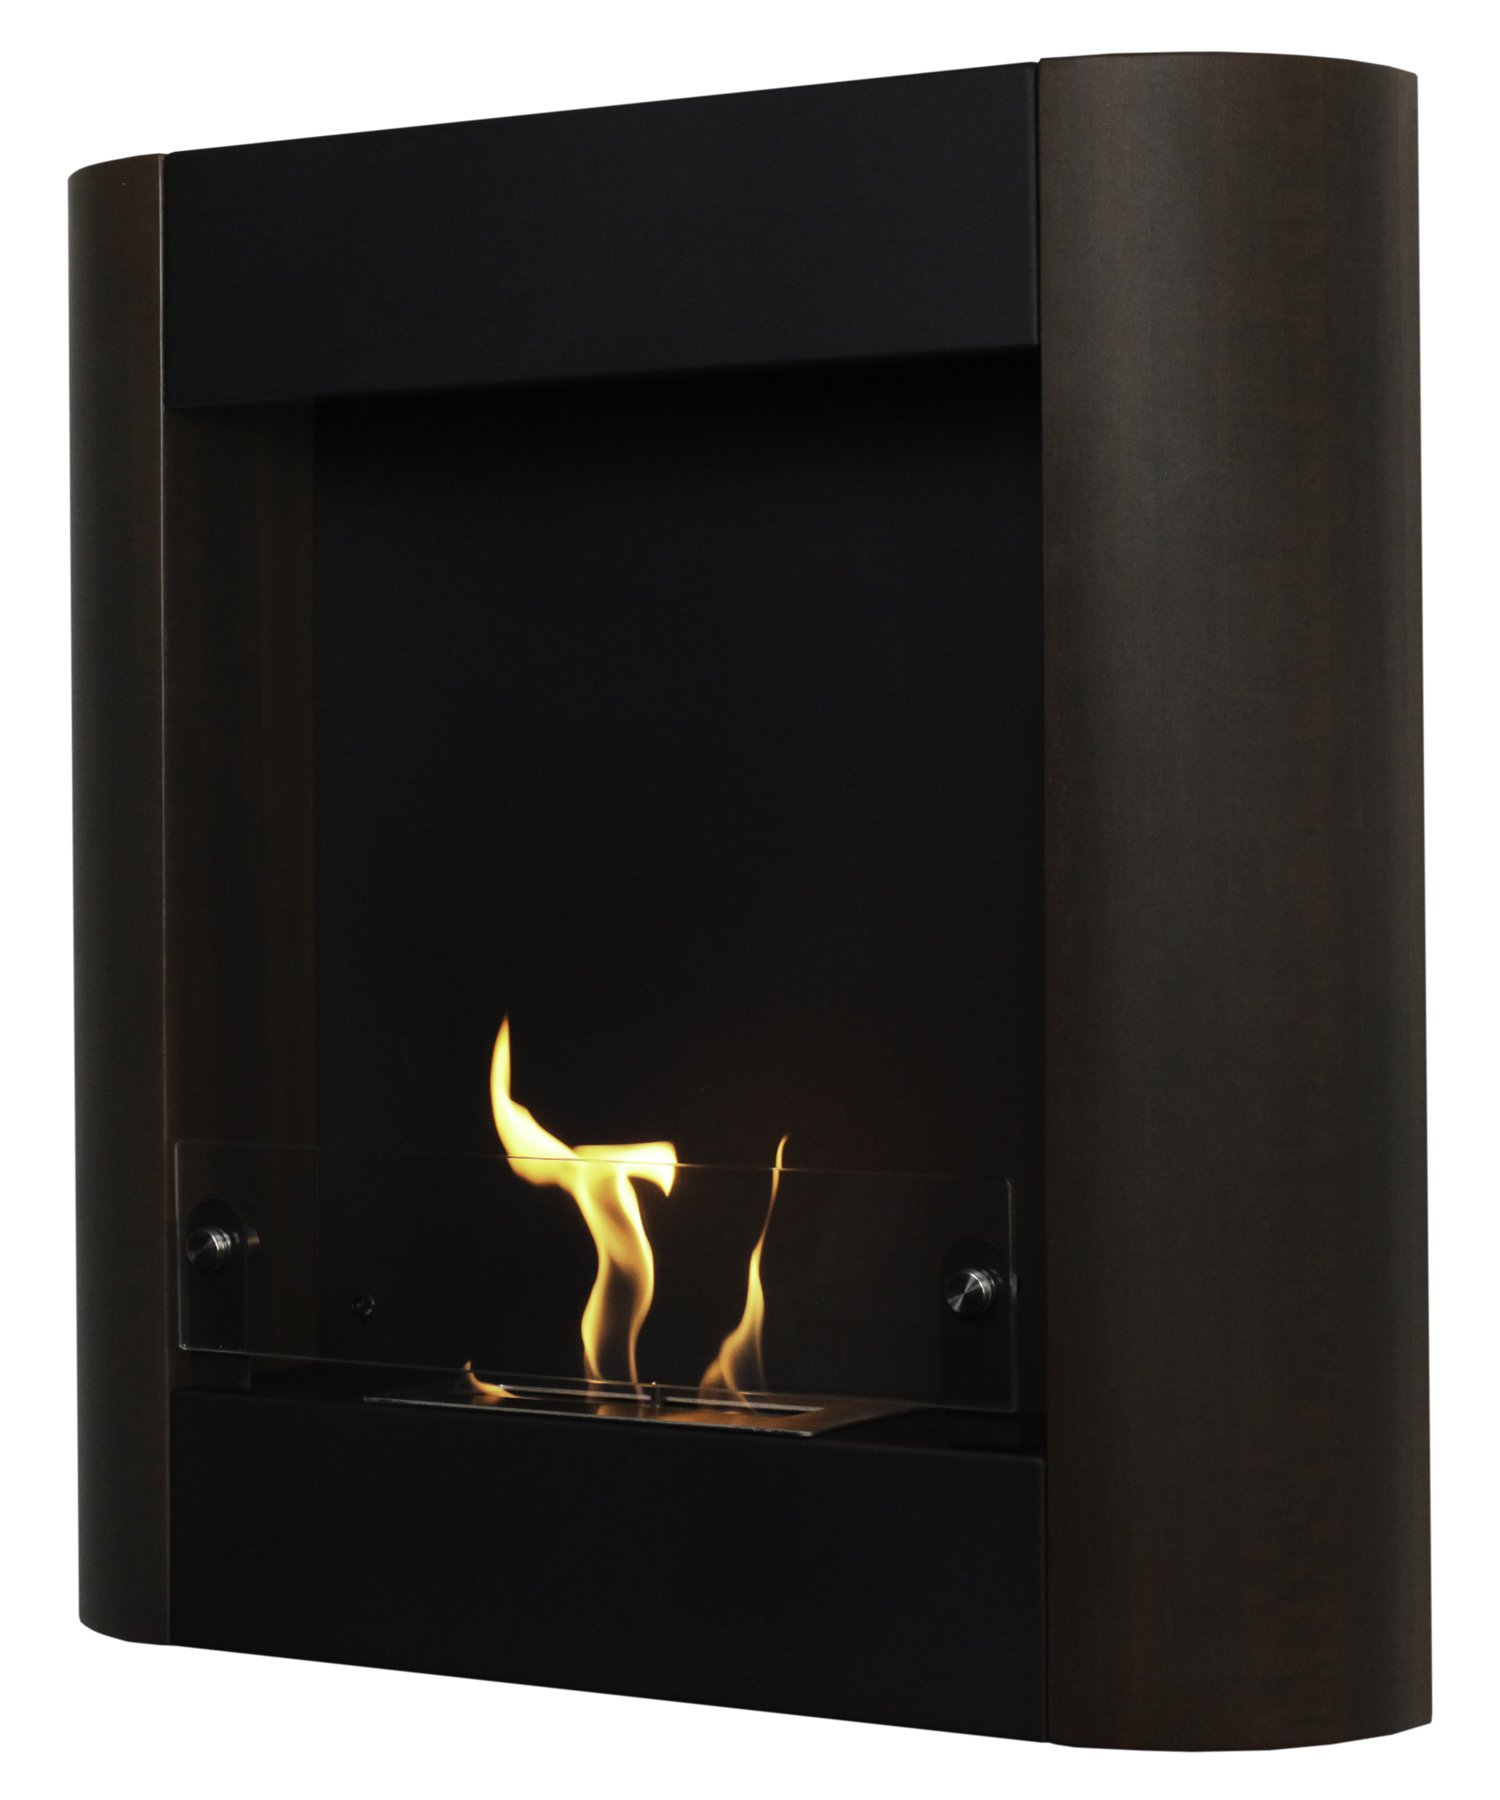 Ethanol Wall Mounted Fireplace New Focolare Muro Wall Mounted Bio Ethanol Fireplace